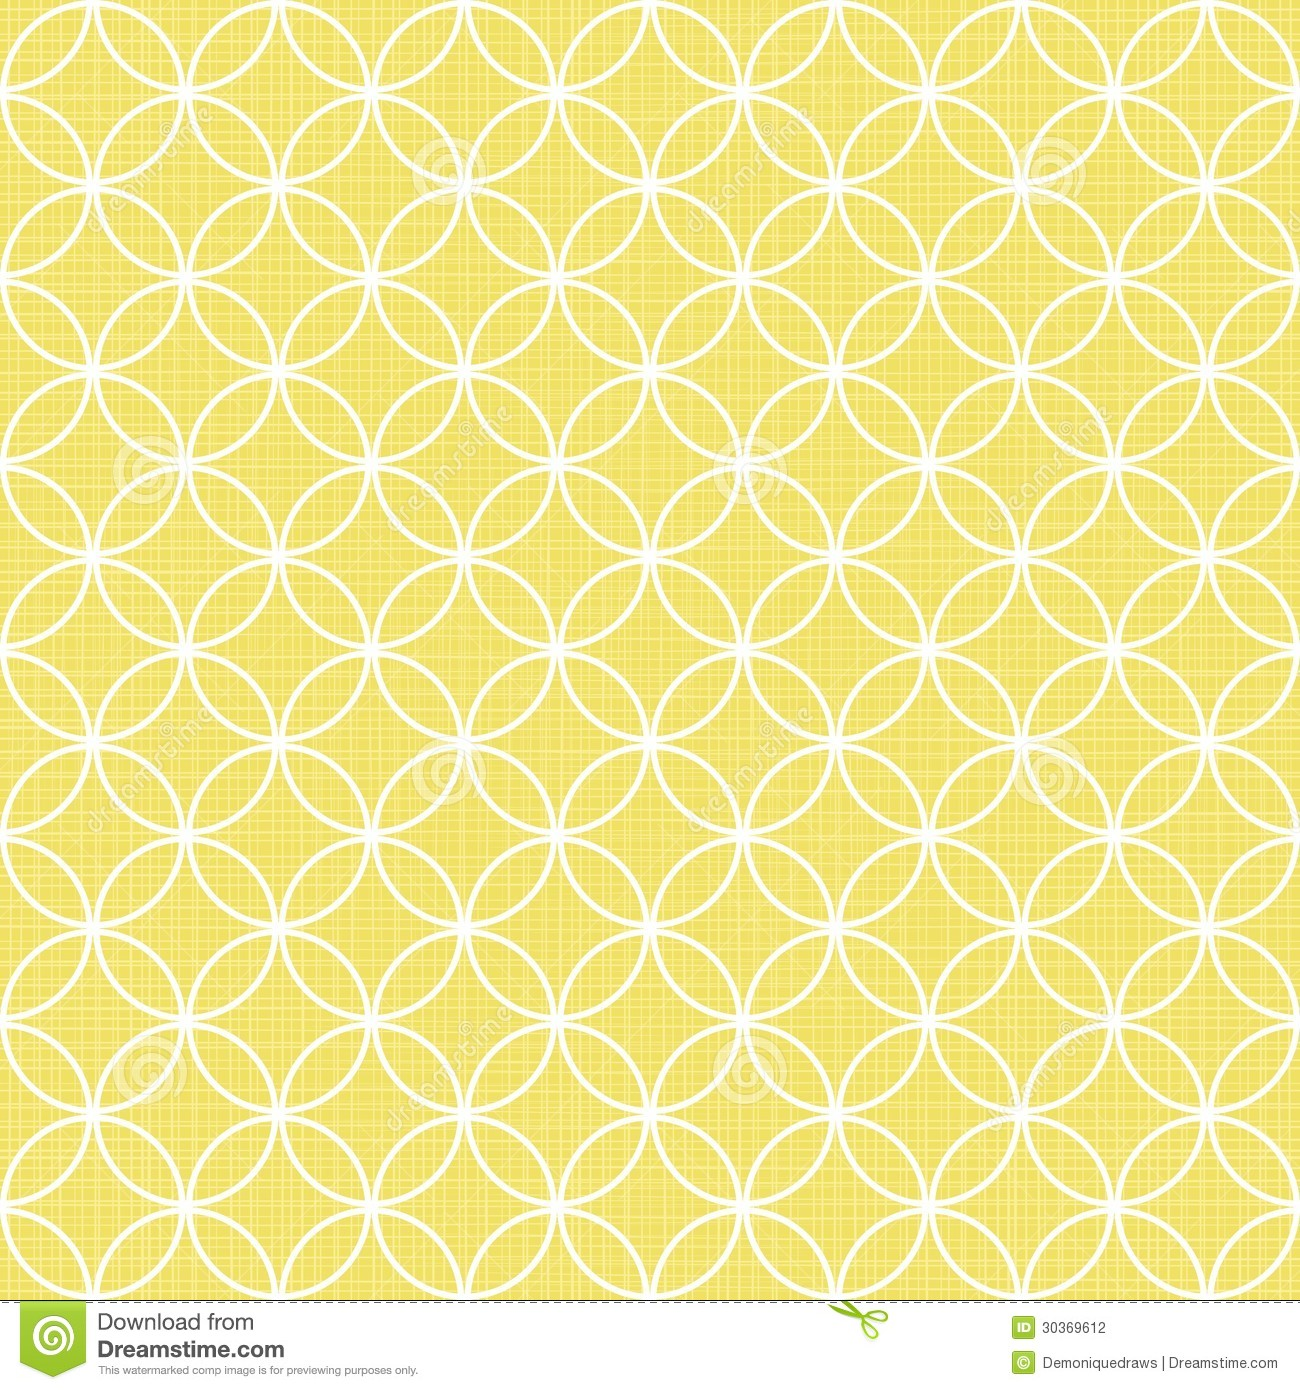 Retro White Circles In Rows On Sunny Yellow Stock ...